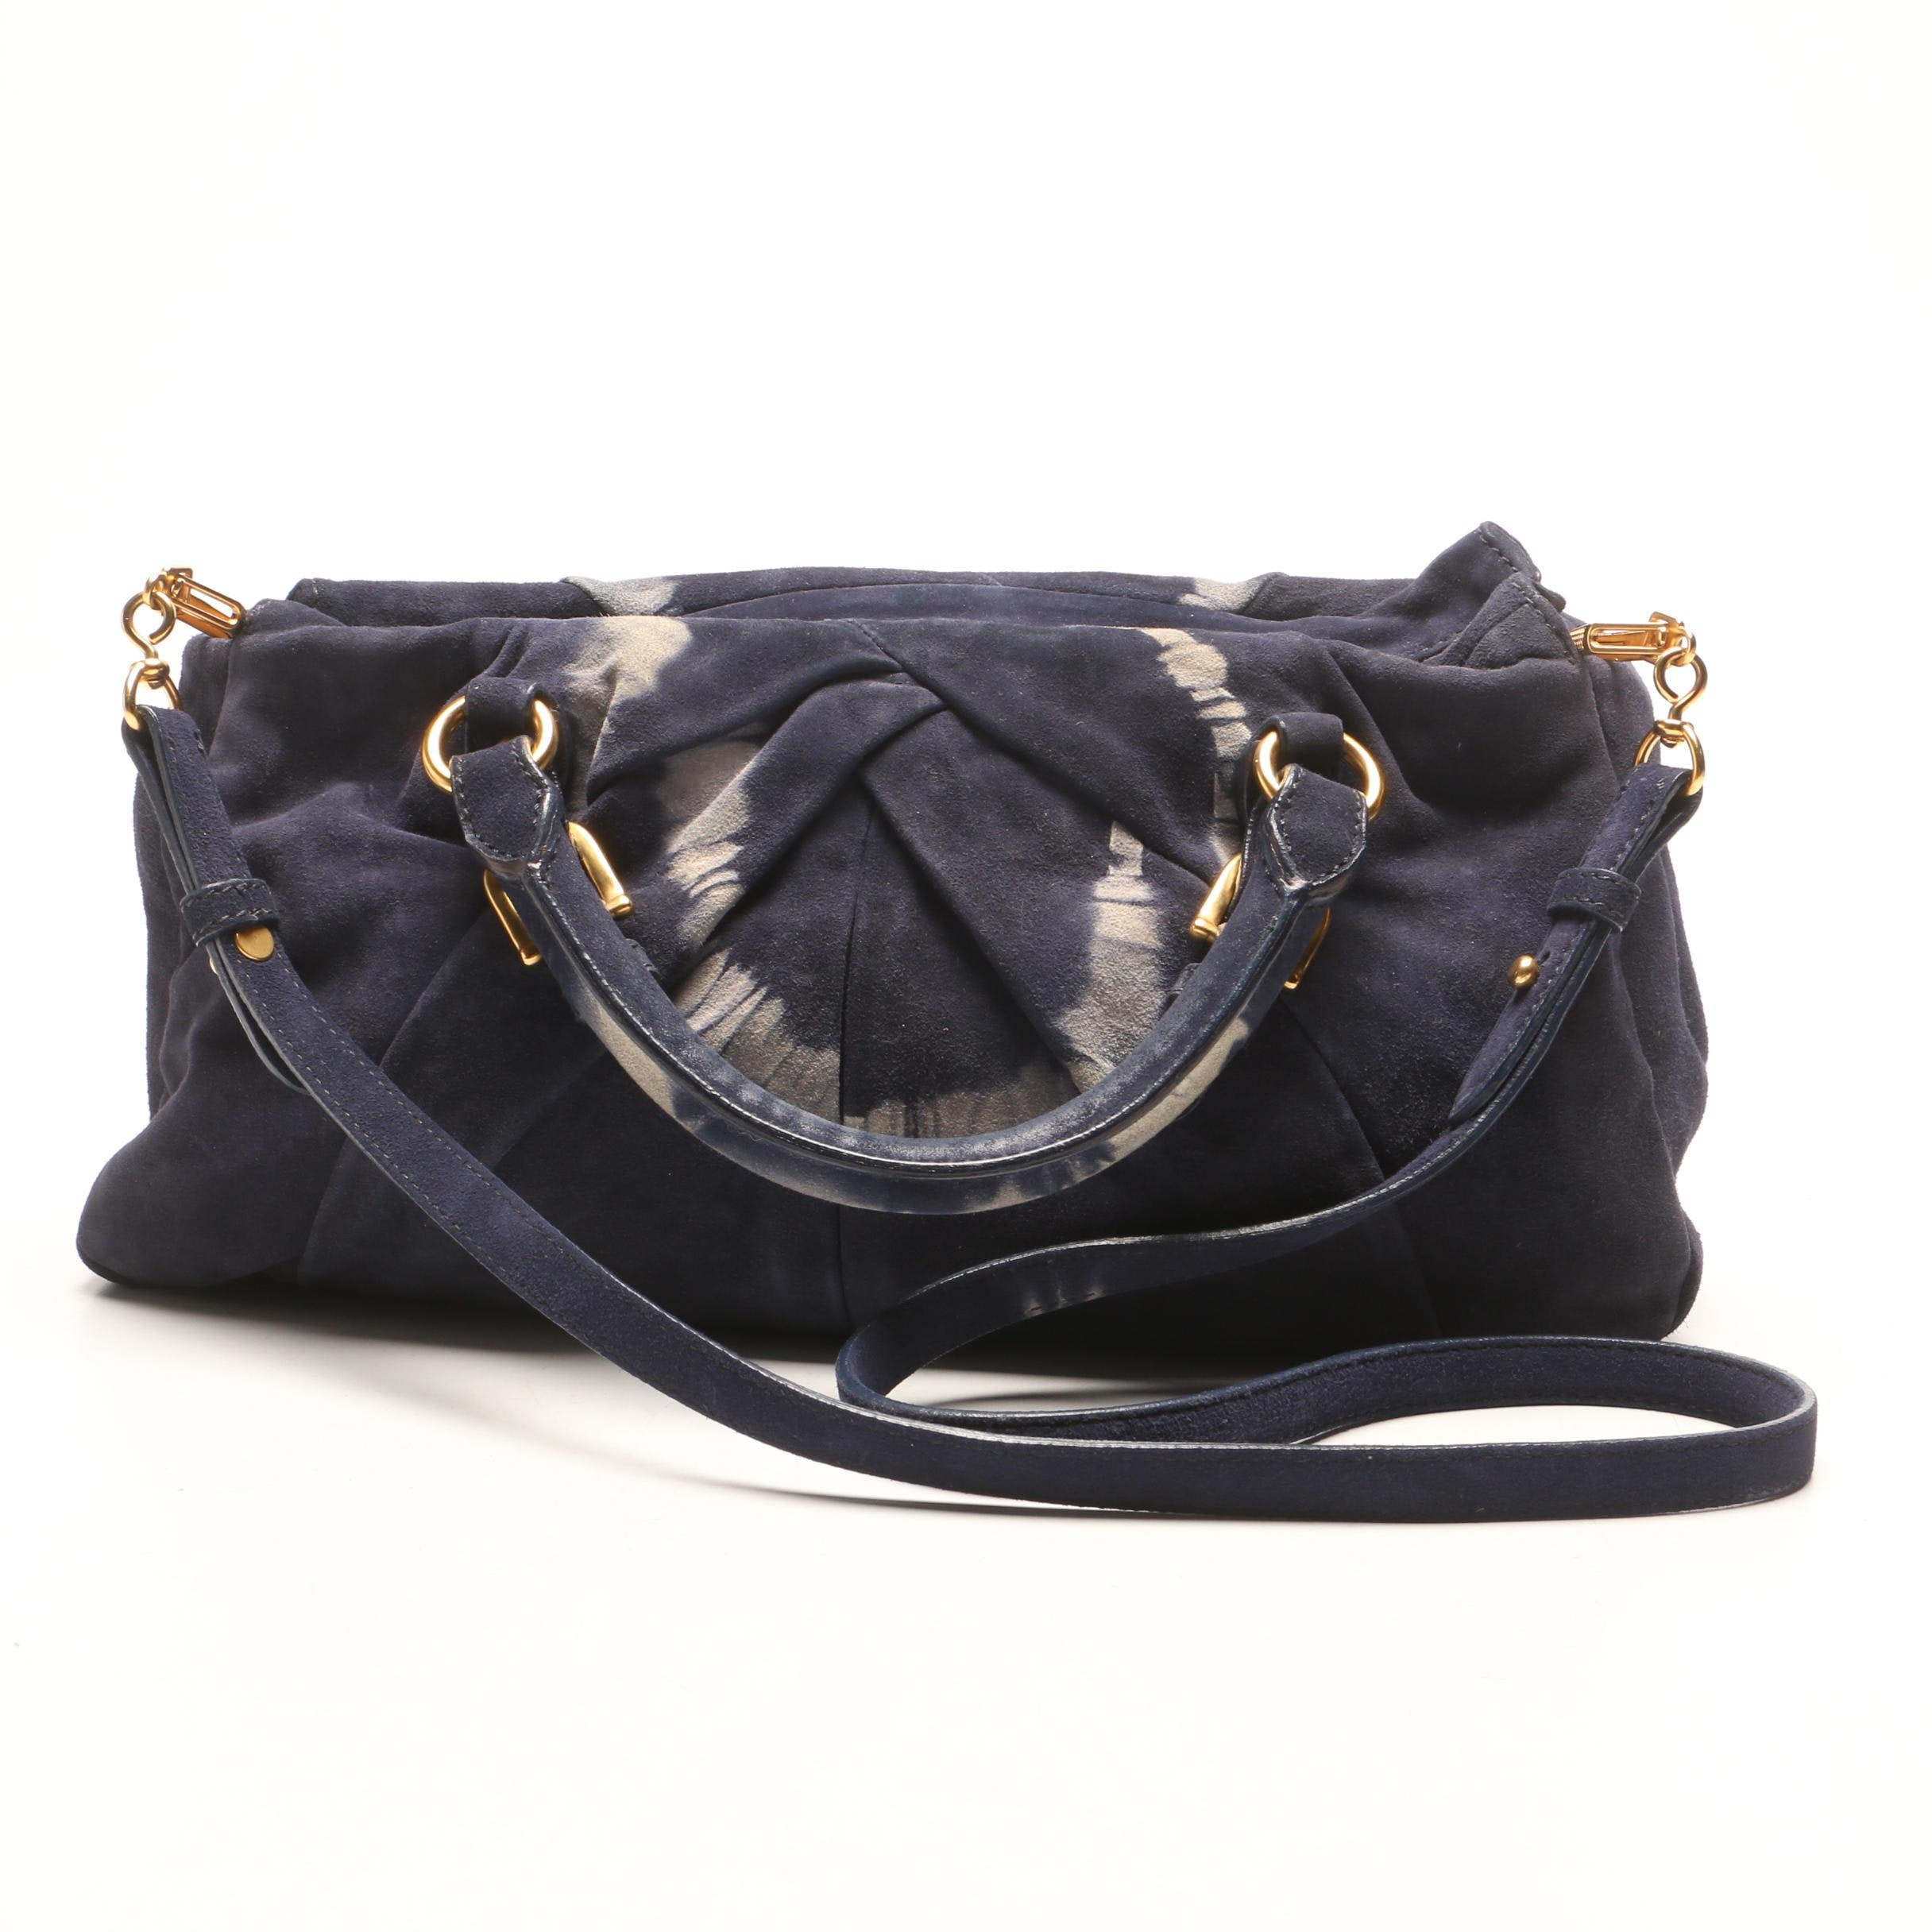 Miu Miu Dark Blue Suede and Leather Satchel with Tie-Dyed Accents